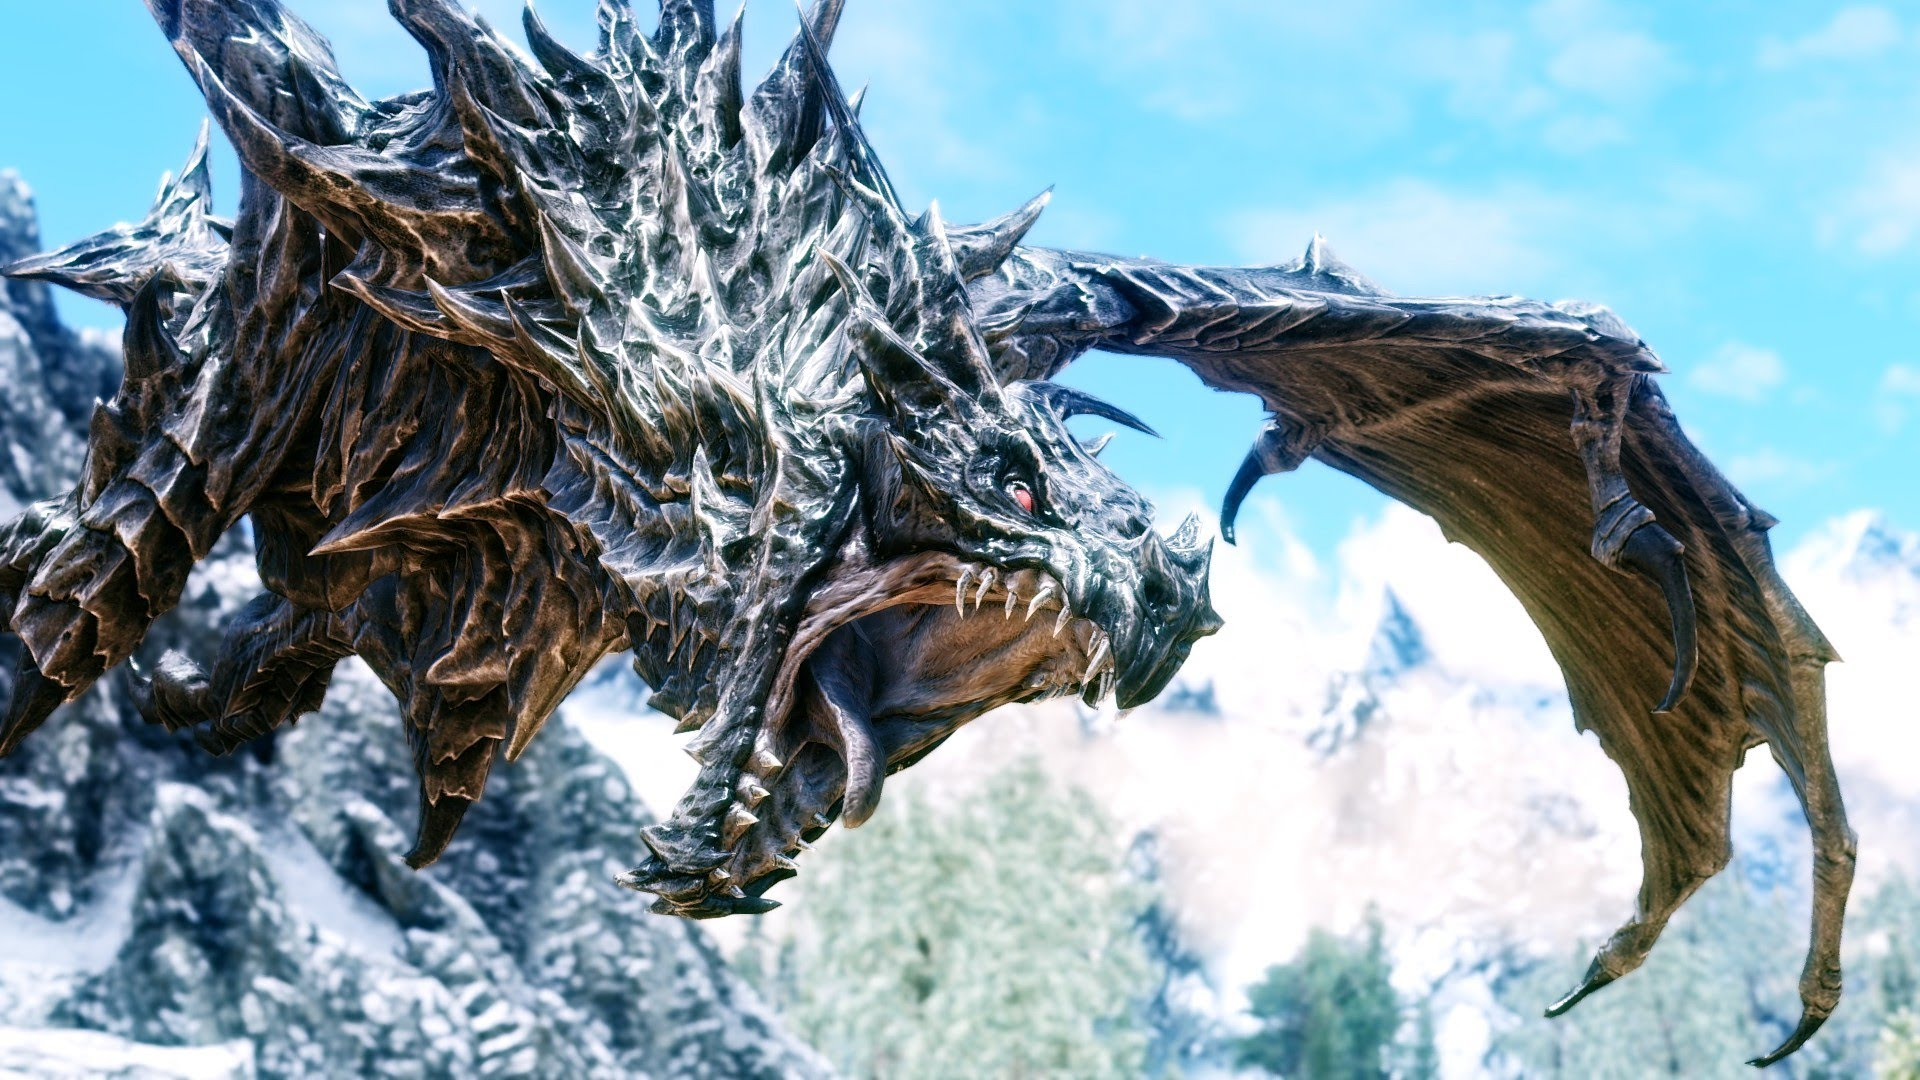 Skyrim Dragon: Skyrim Hidden Bosses That You Probably Didn't Know About